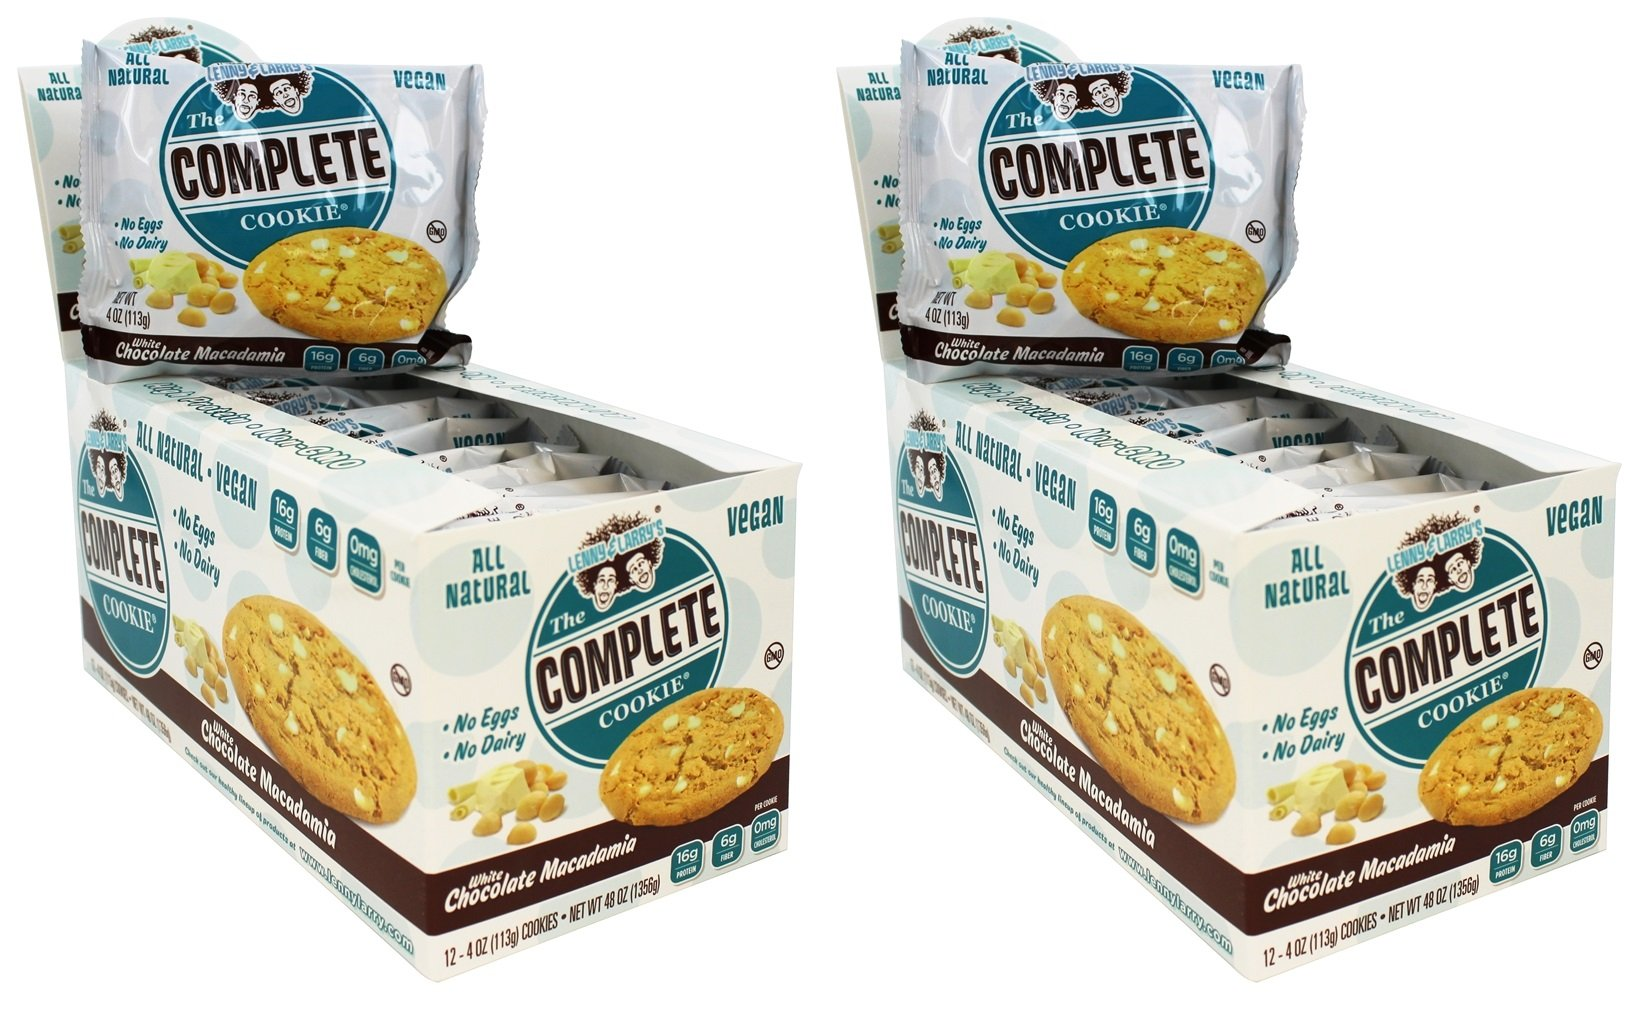 Lenny & Larry's The Complete Cookie, White Chocolate Macadamia, 24 Count